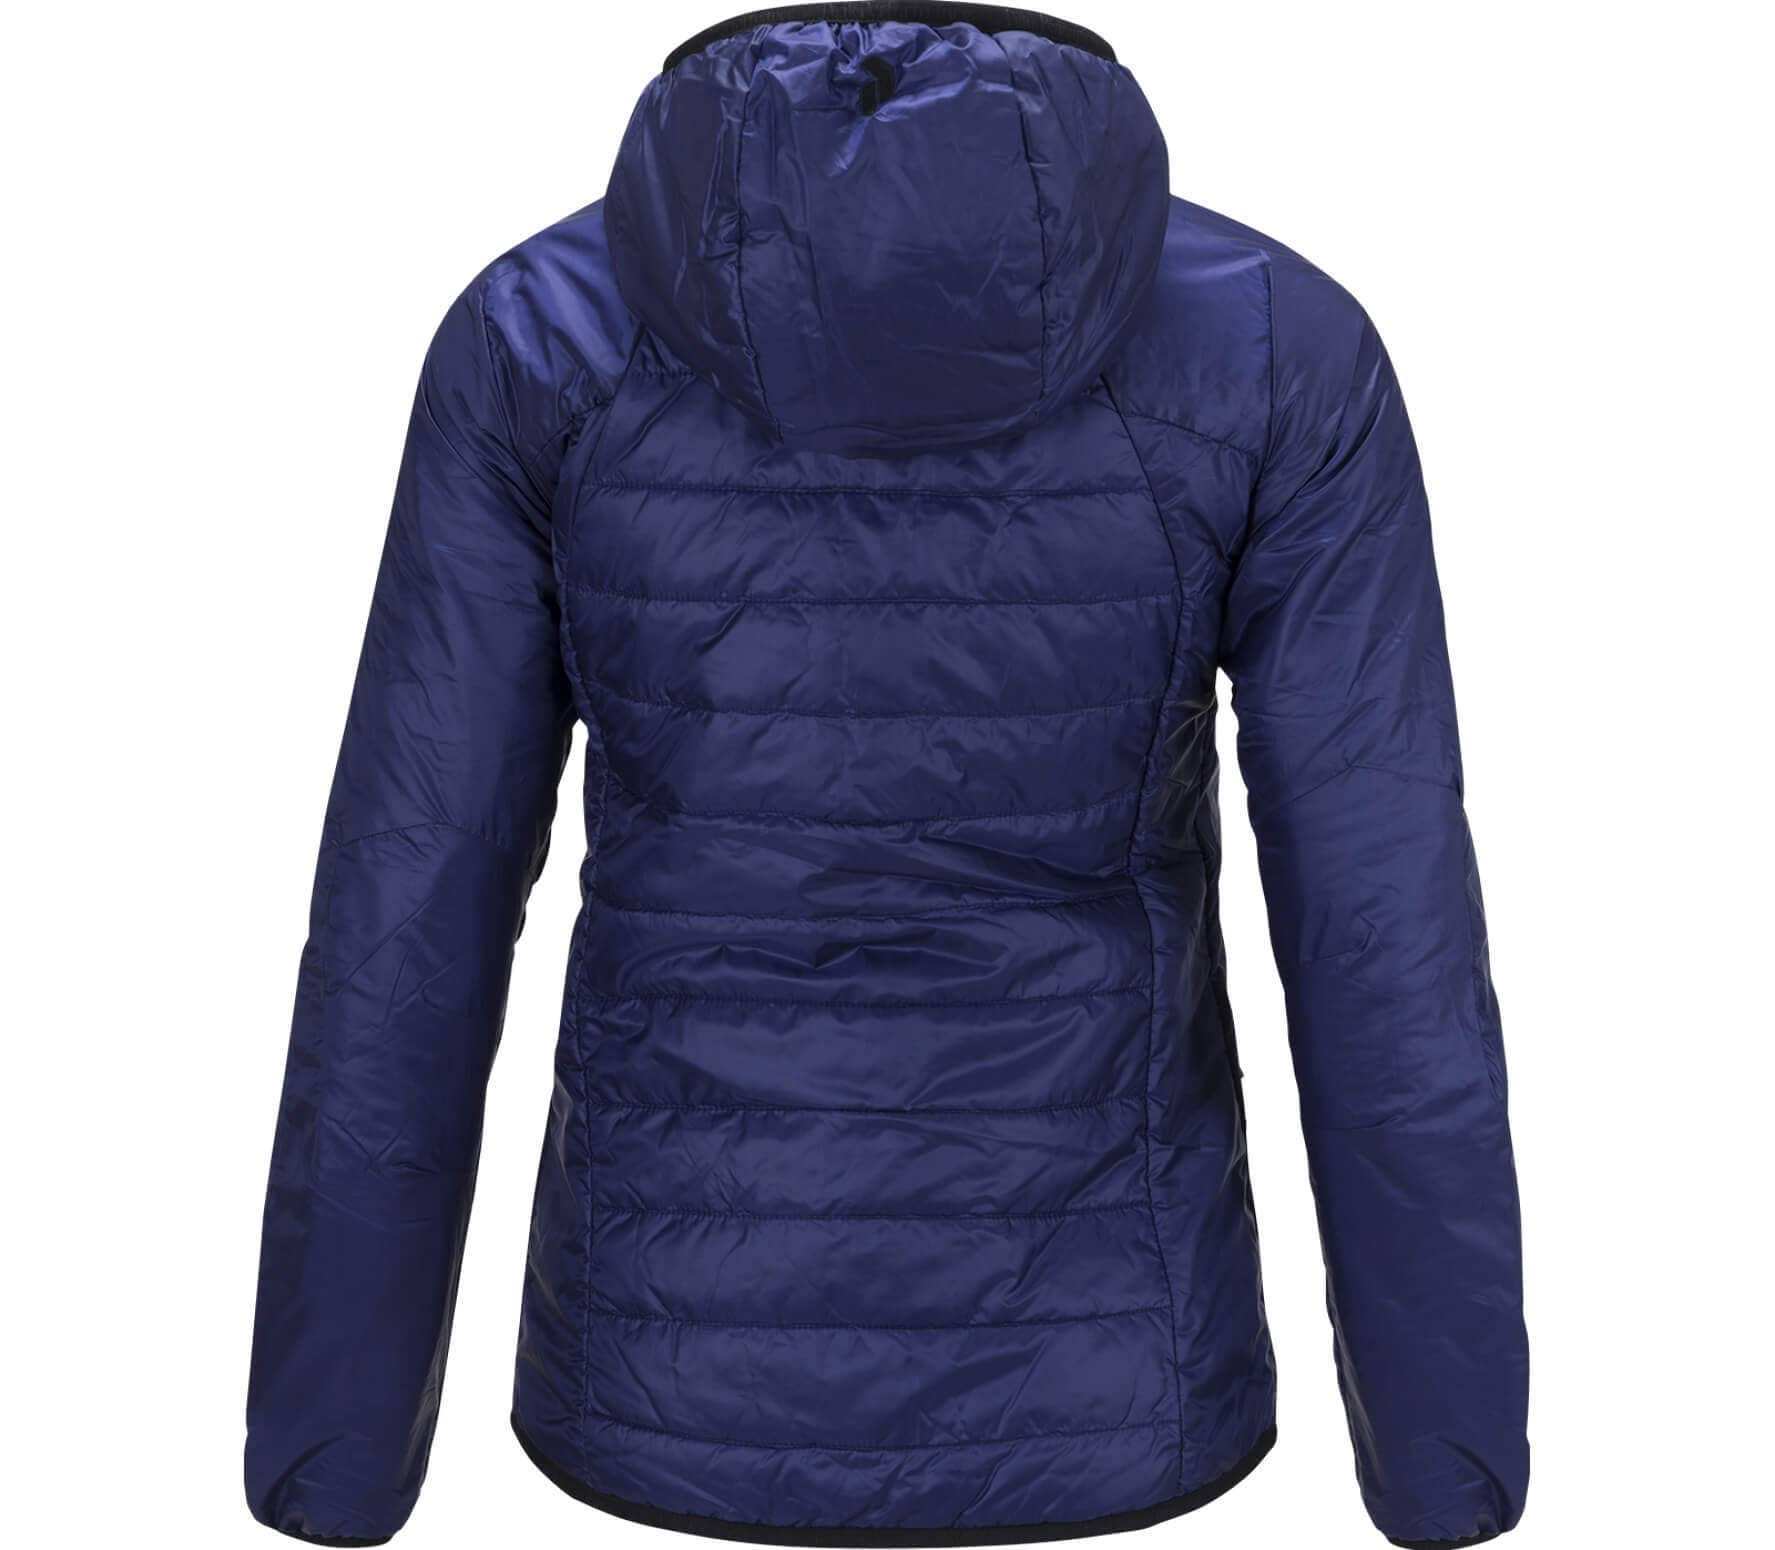 the best attitude c4985 8234c Peak Performance - Heli Liner Damen Kunstfaserisolationsjacke (violett/weiß)